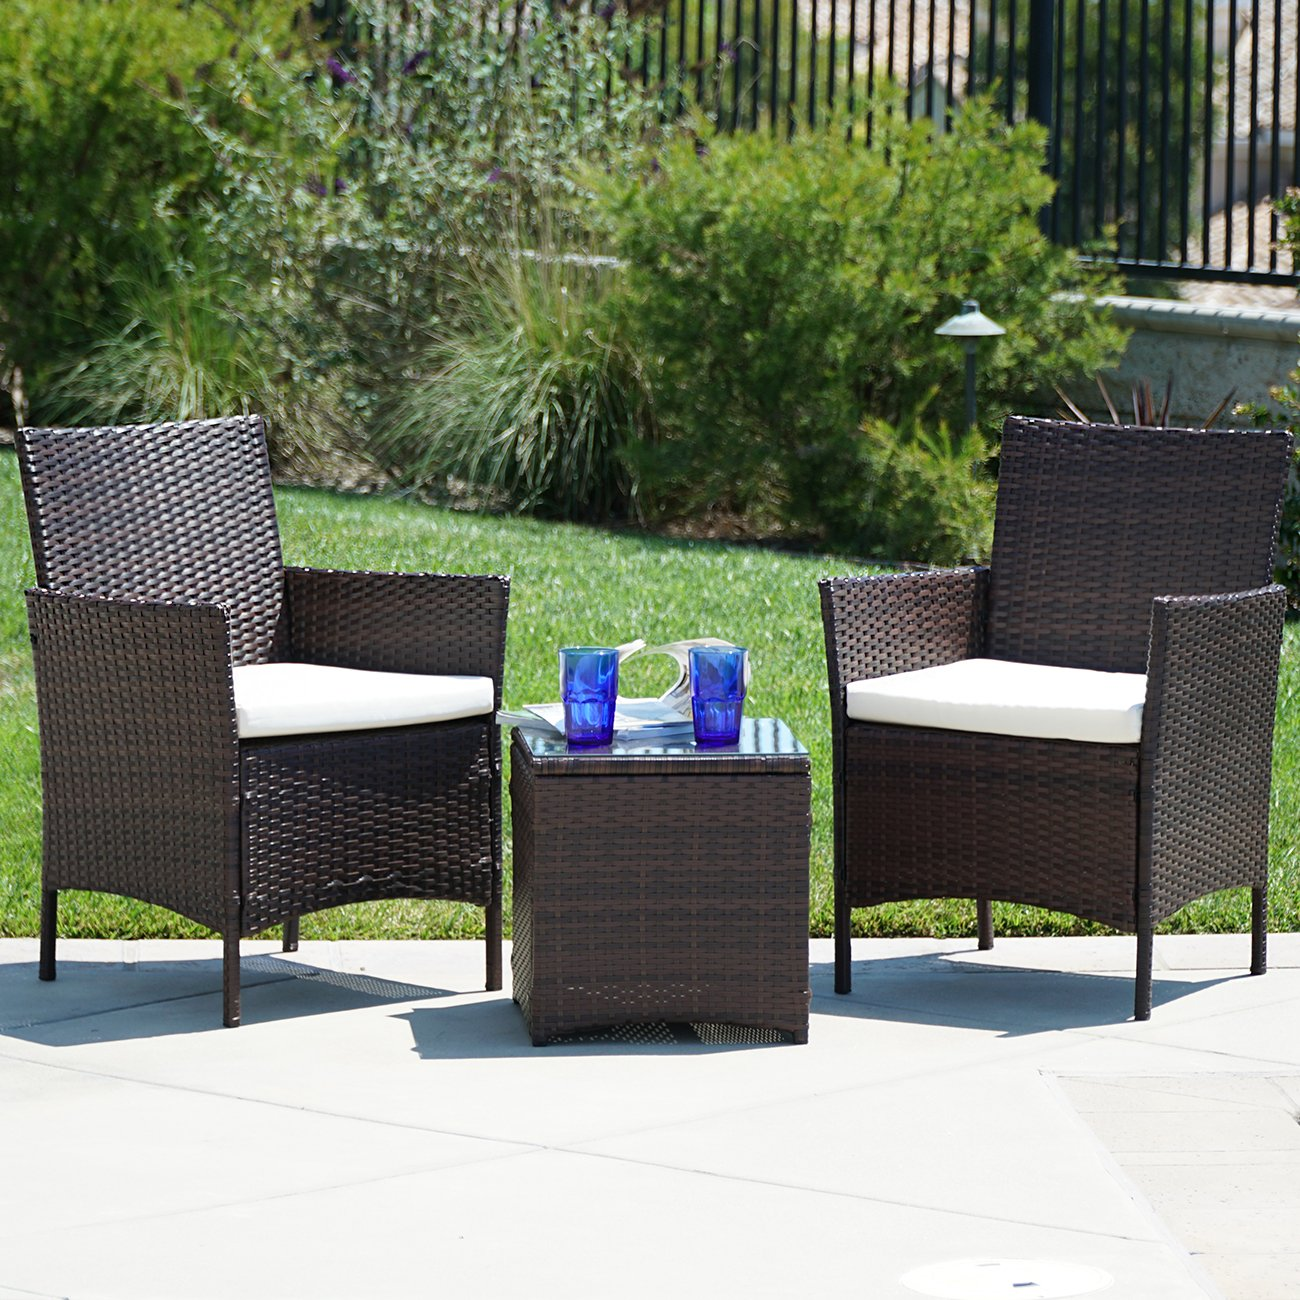 Amazon com belleze 3pc outdoor patio furniture wicker cushion seat coffee backyard yard high backrest bistro set glass top table chairs brown garden